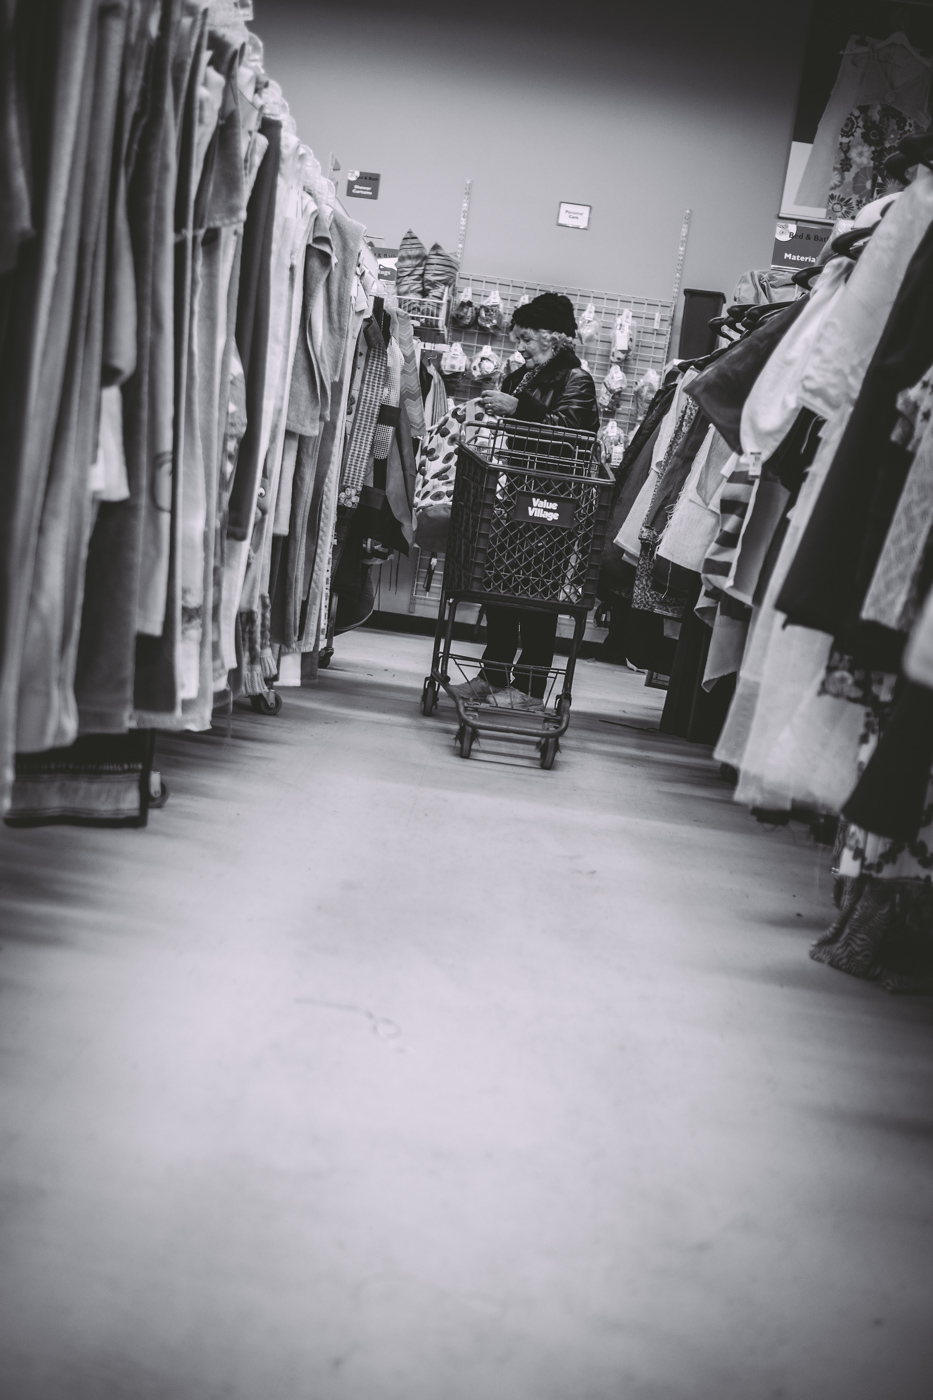 vintageshopping_march26th43.jpg